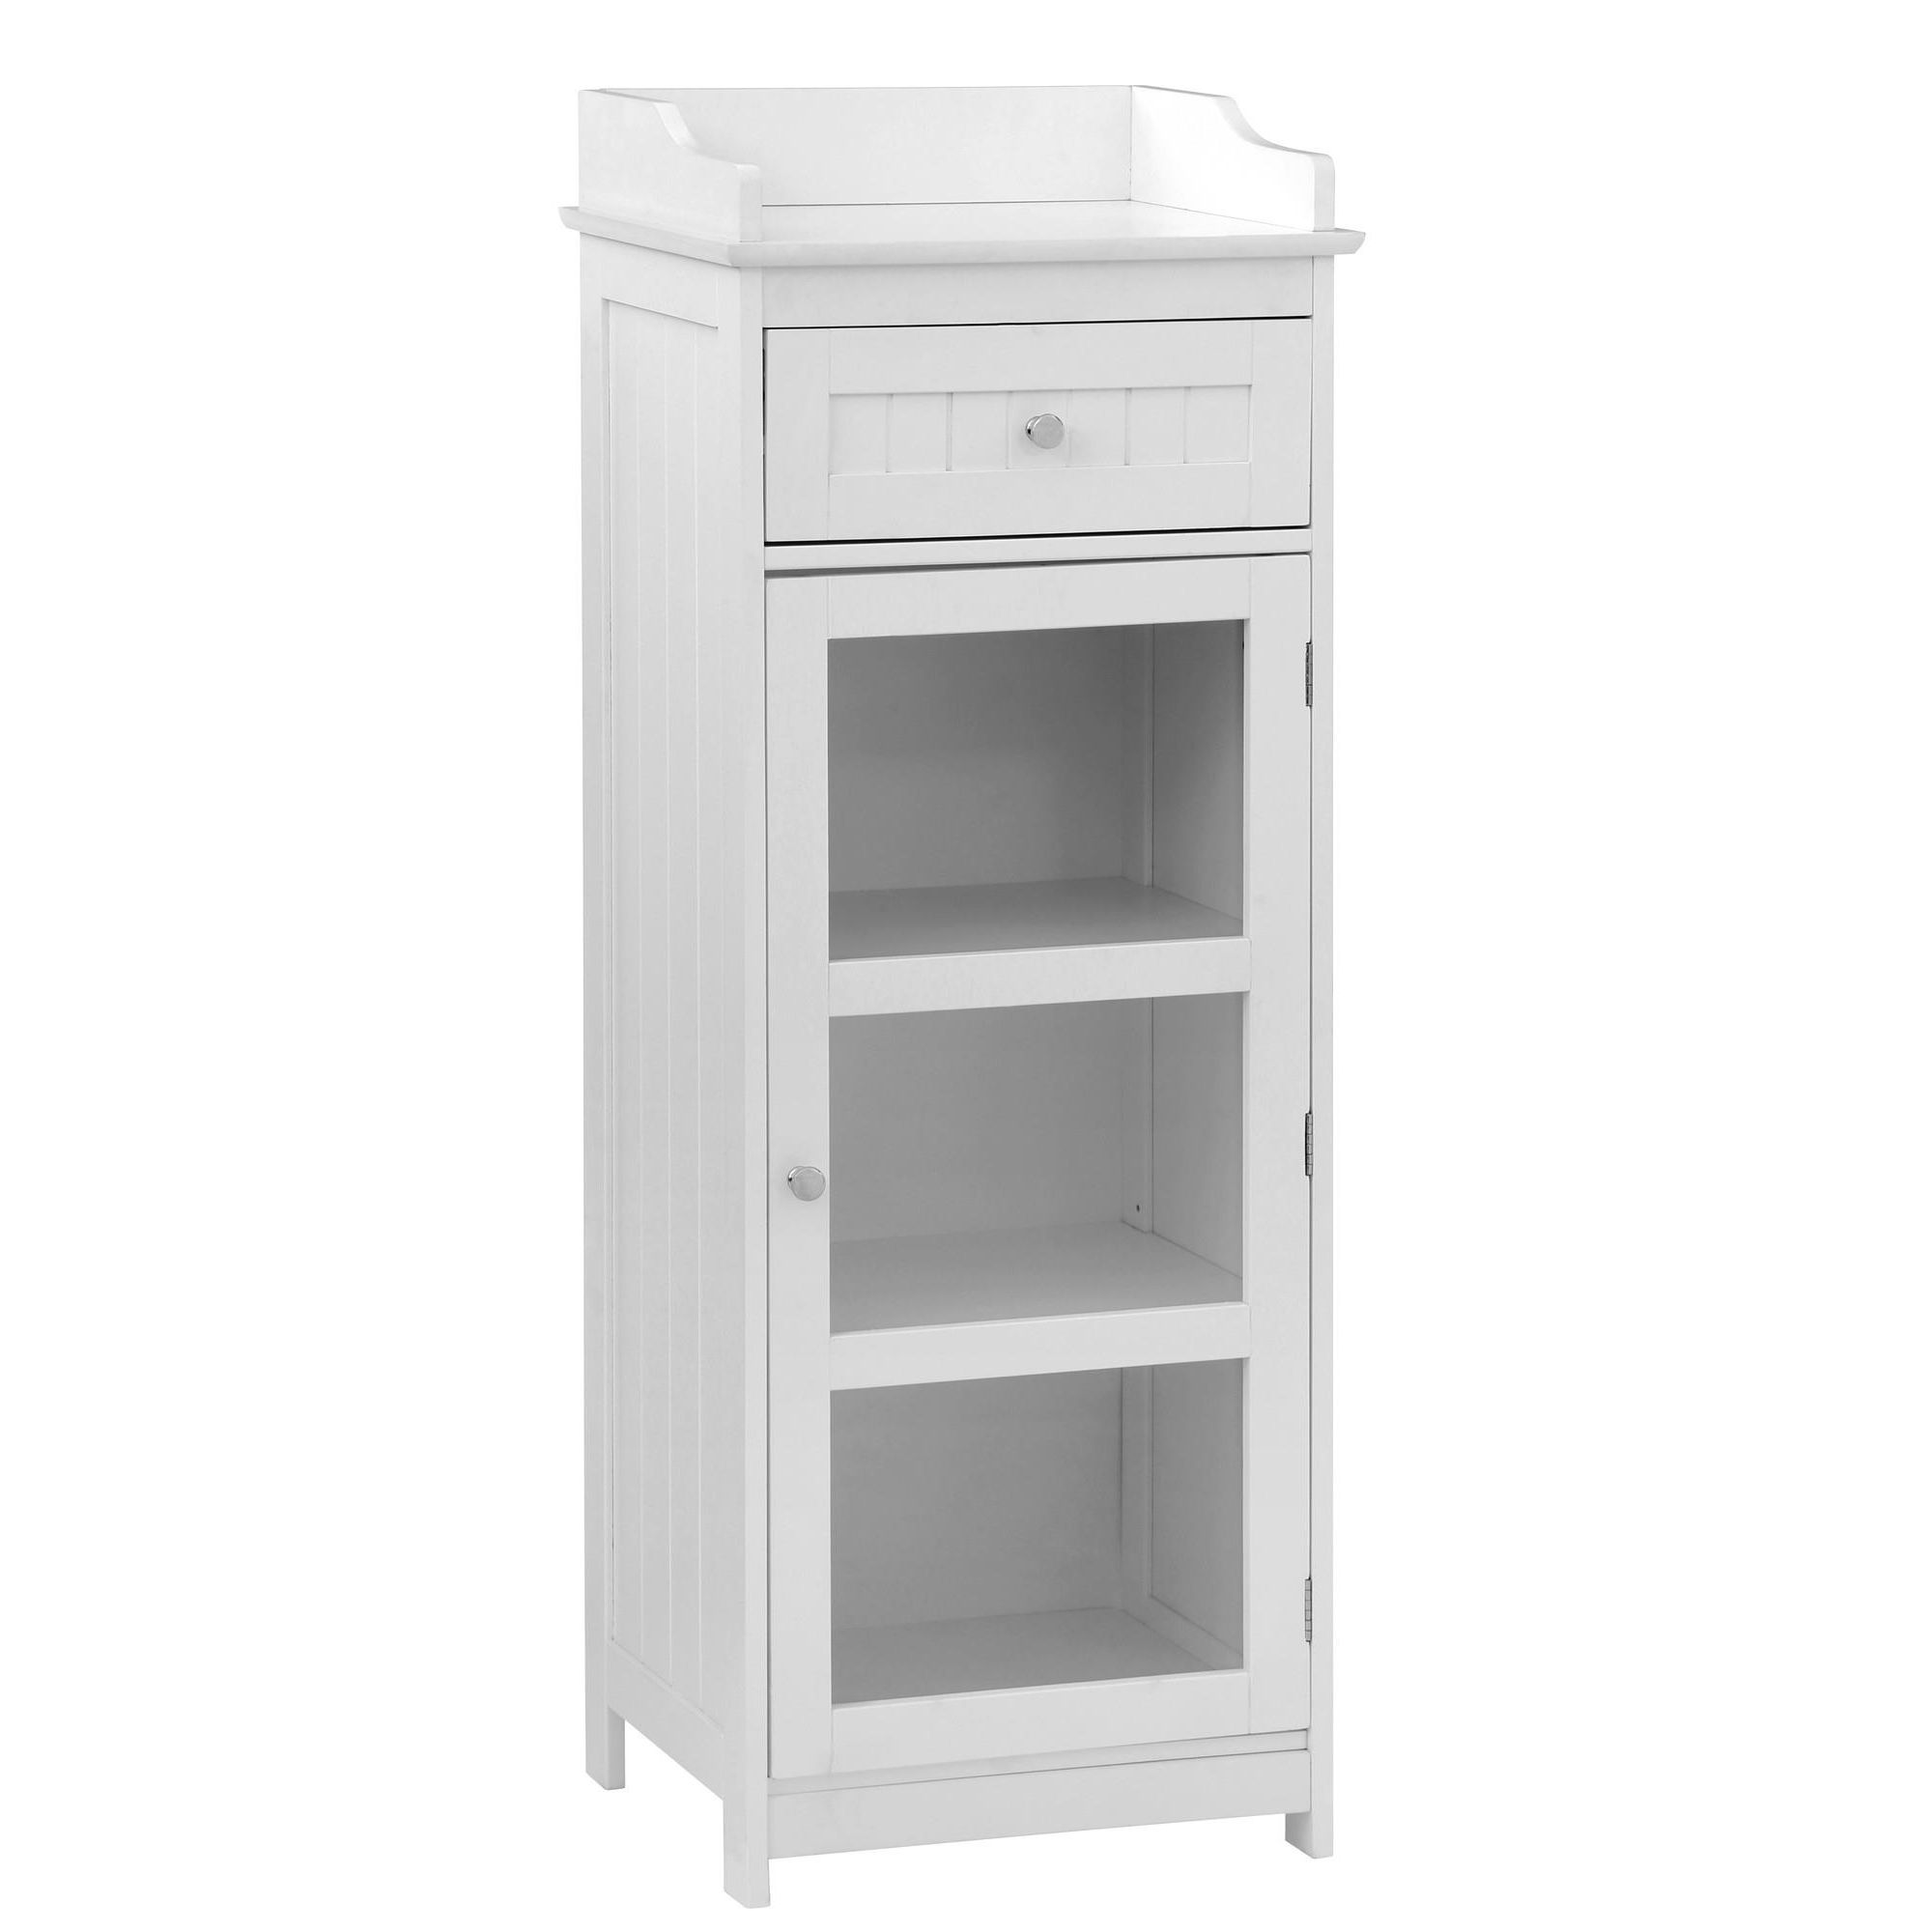 26 fantastic bathroom storage cabinets floor standing for White bathroom cabinets free standing